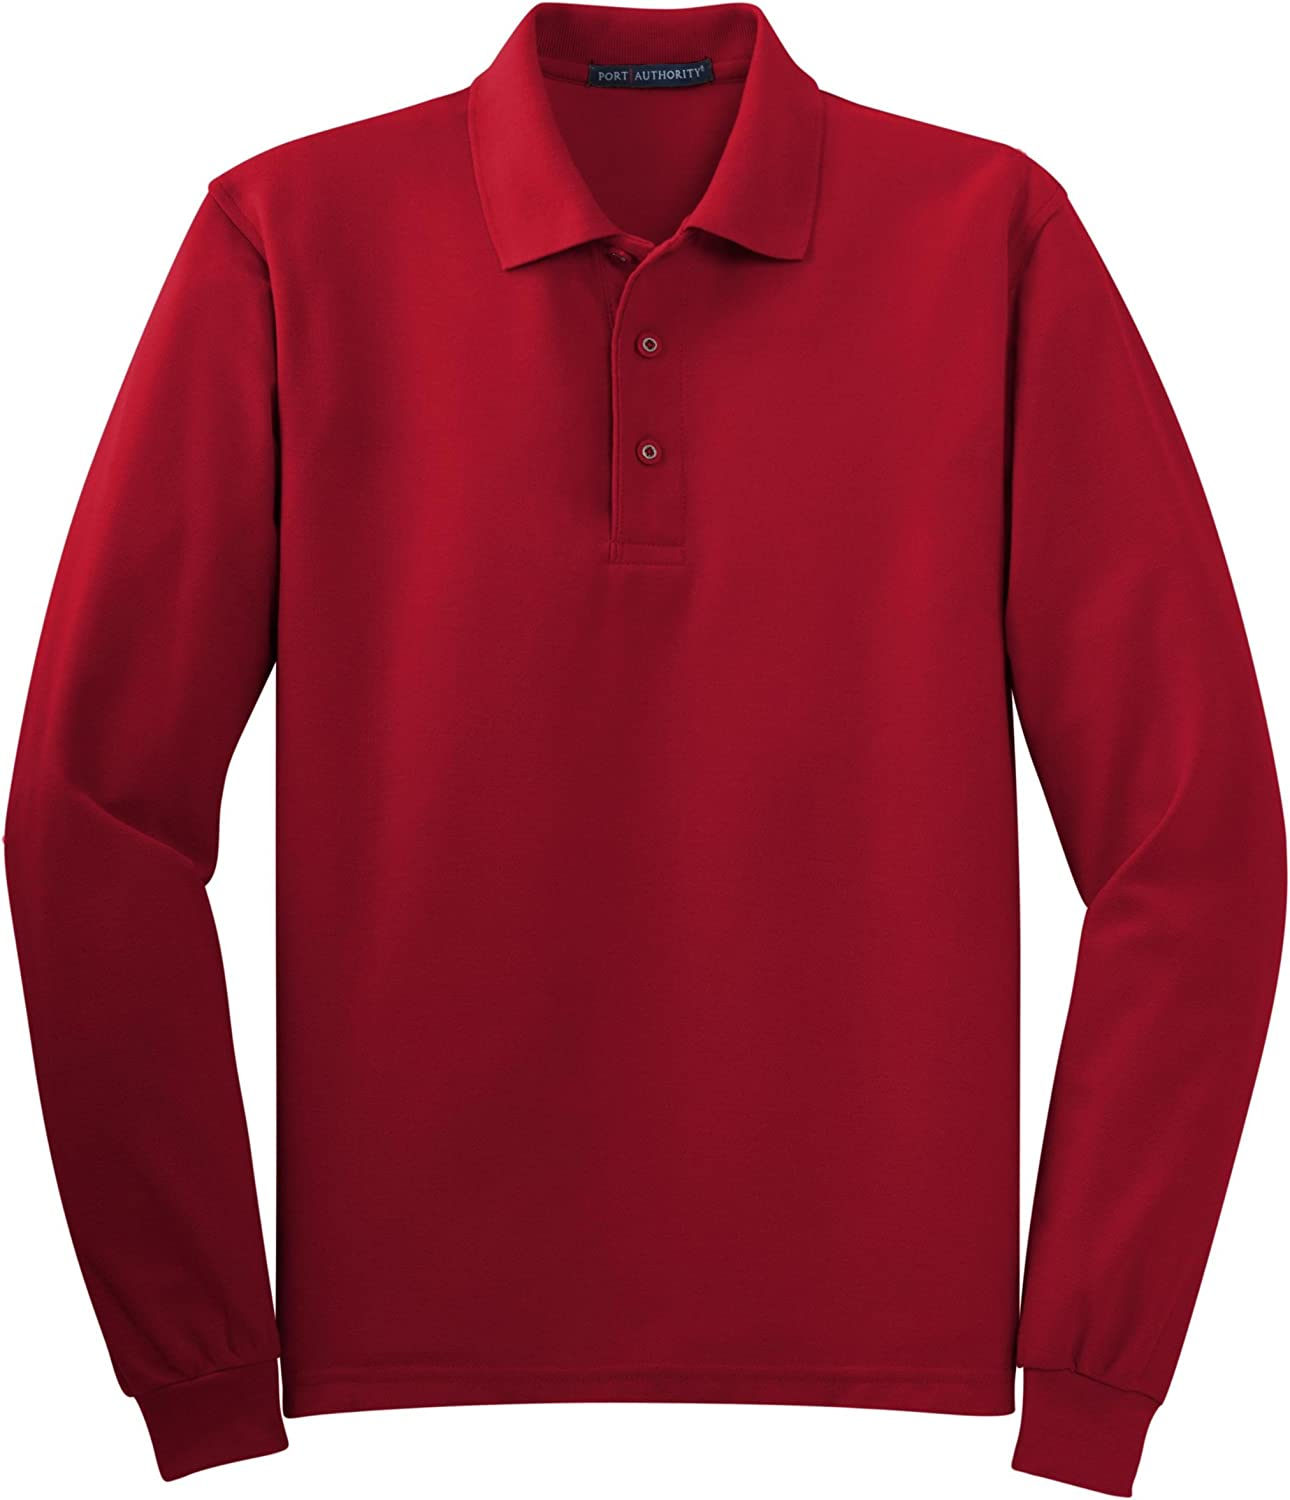 Port Authority Tall Silk Touch Long Sleeve Polo Shirt, 4XLT, Red